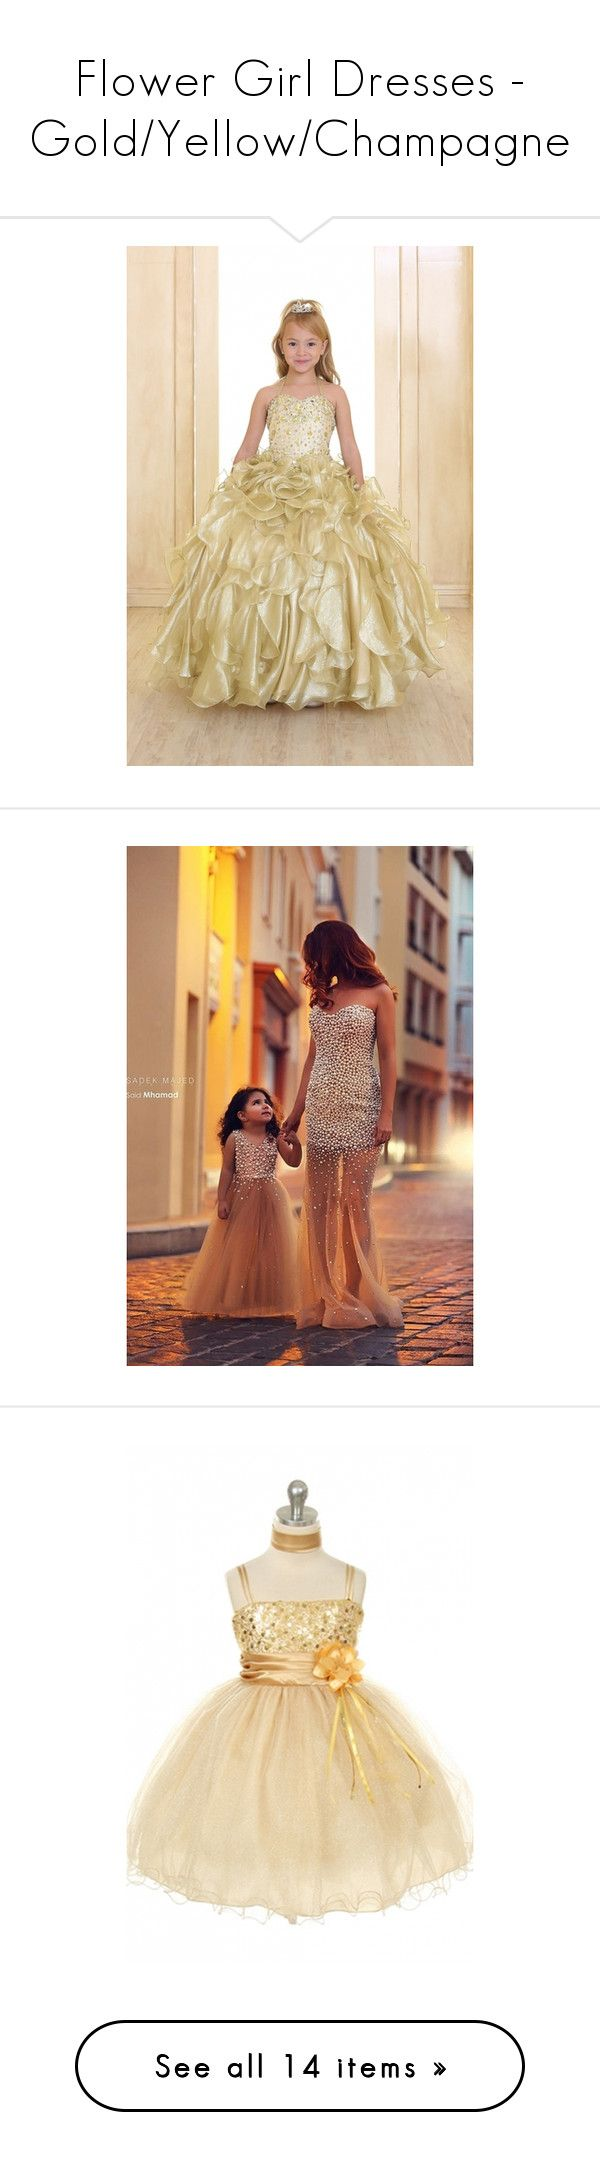 """""""Flower Girl Dresses - Gold/Yellow/Champagne"""" by caribbean-dynasty ❤ liked on Polyvore featuring dresses, beaded dress, frilly dresses, beige cocktail dress, gold beaded dress, gold metallic cocktail dress, gold sequin cocktail dress, gold sparkly dress, sequin cocktail dresses and gold dress"""